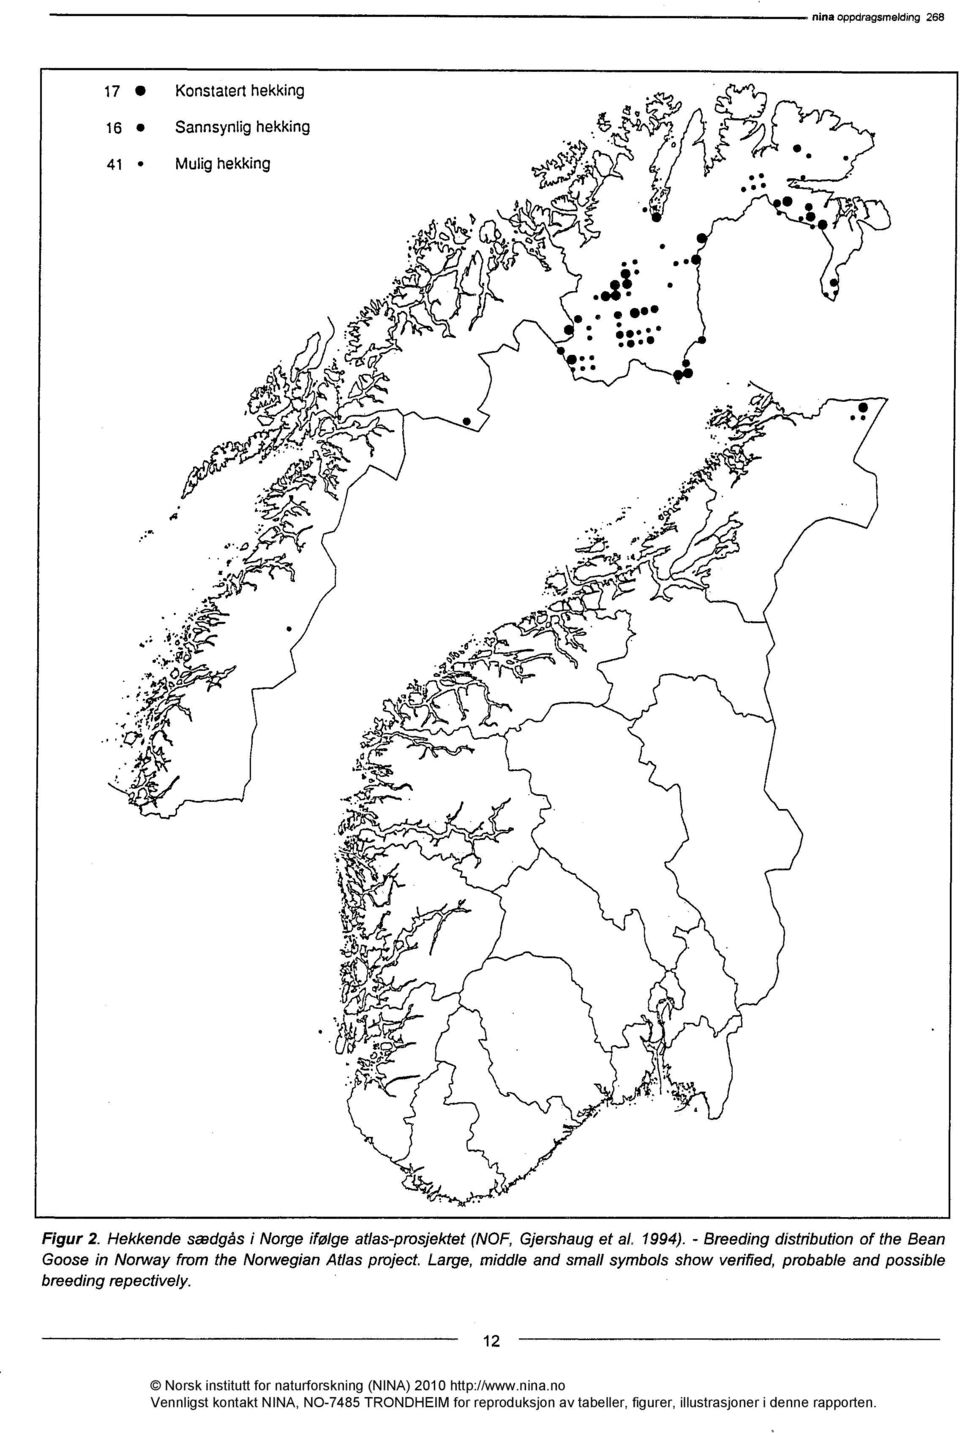 - Breeding distribution of the Bean Goose in NortAlay from the Norwegian Atlas project.